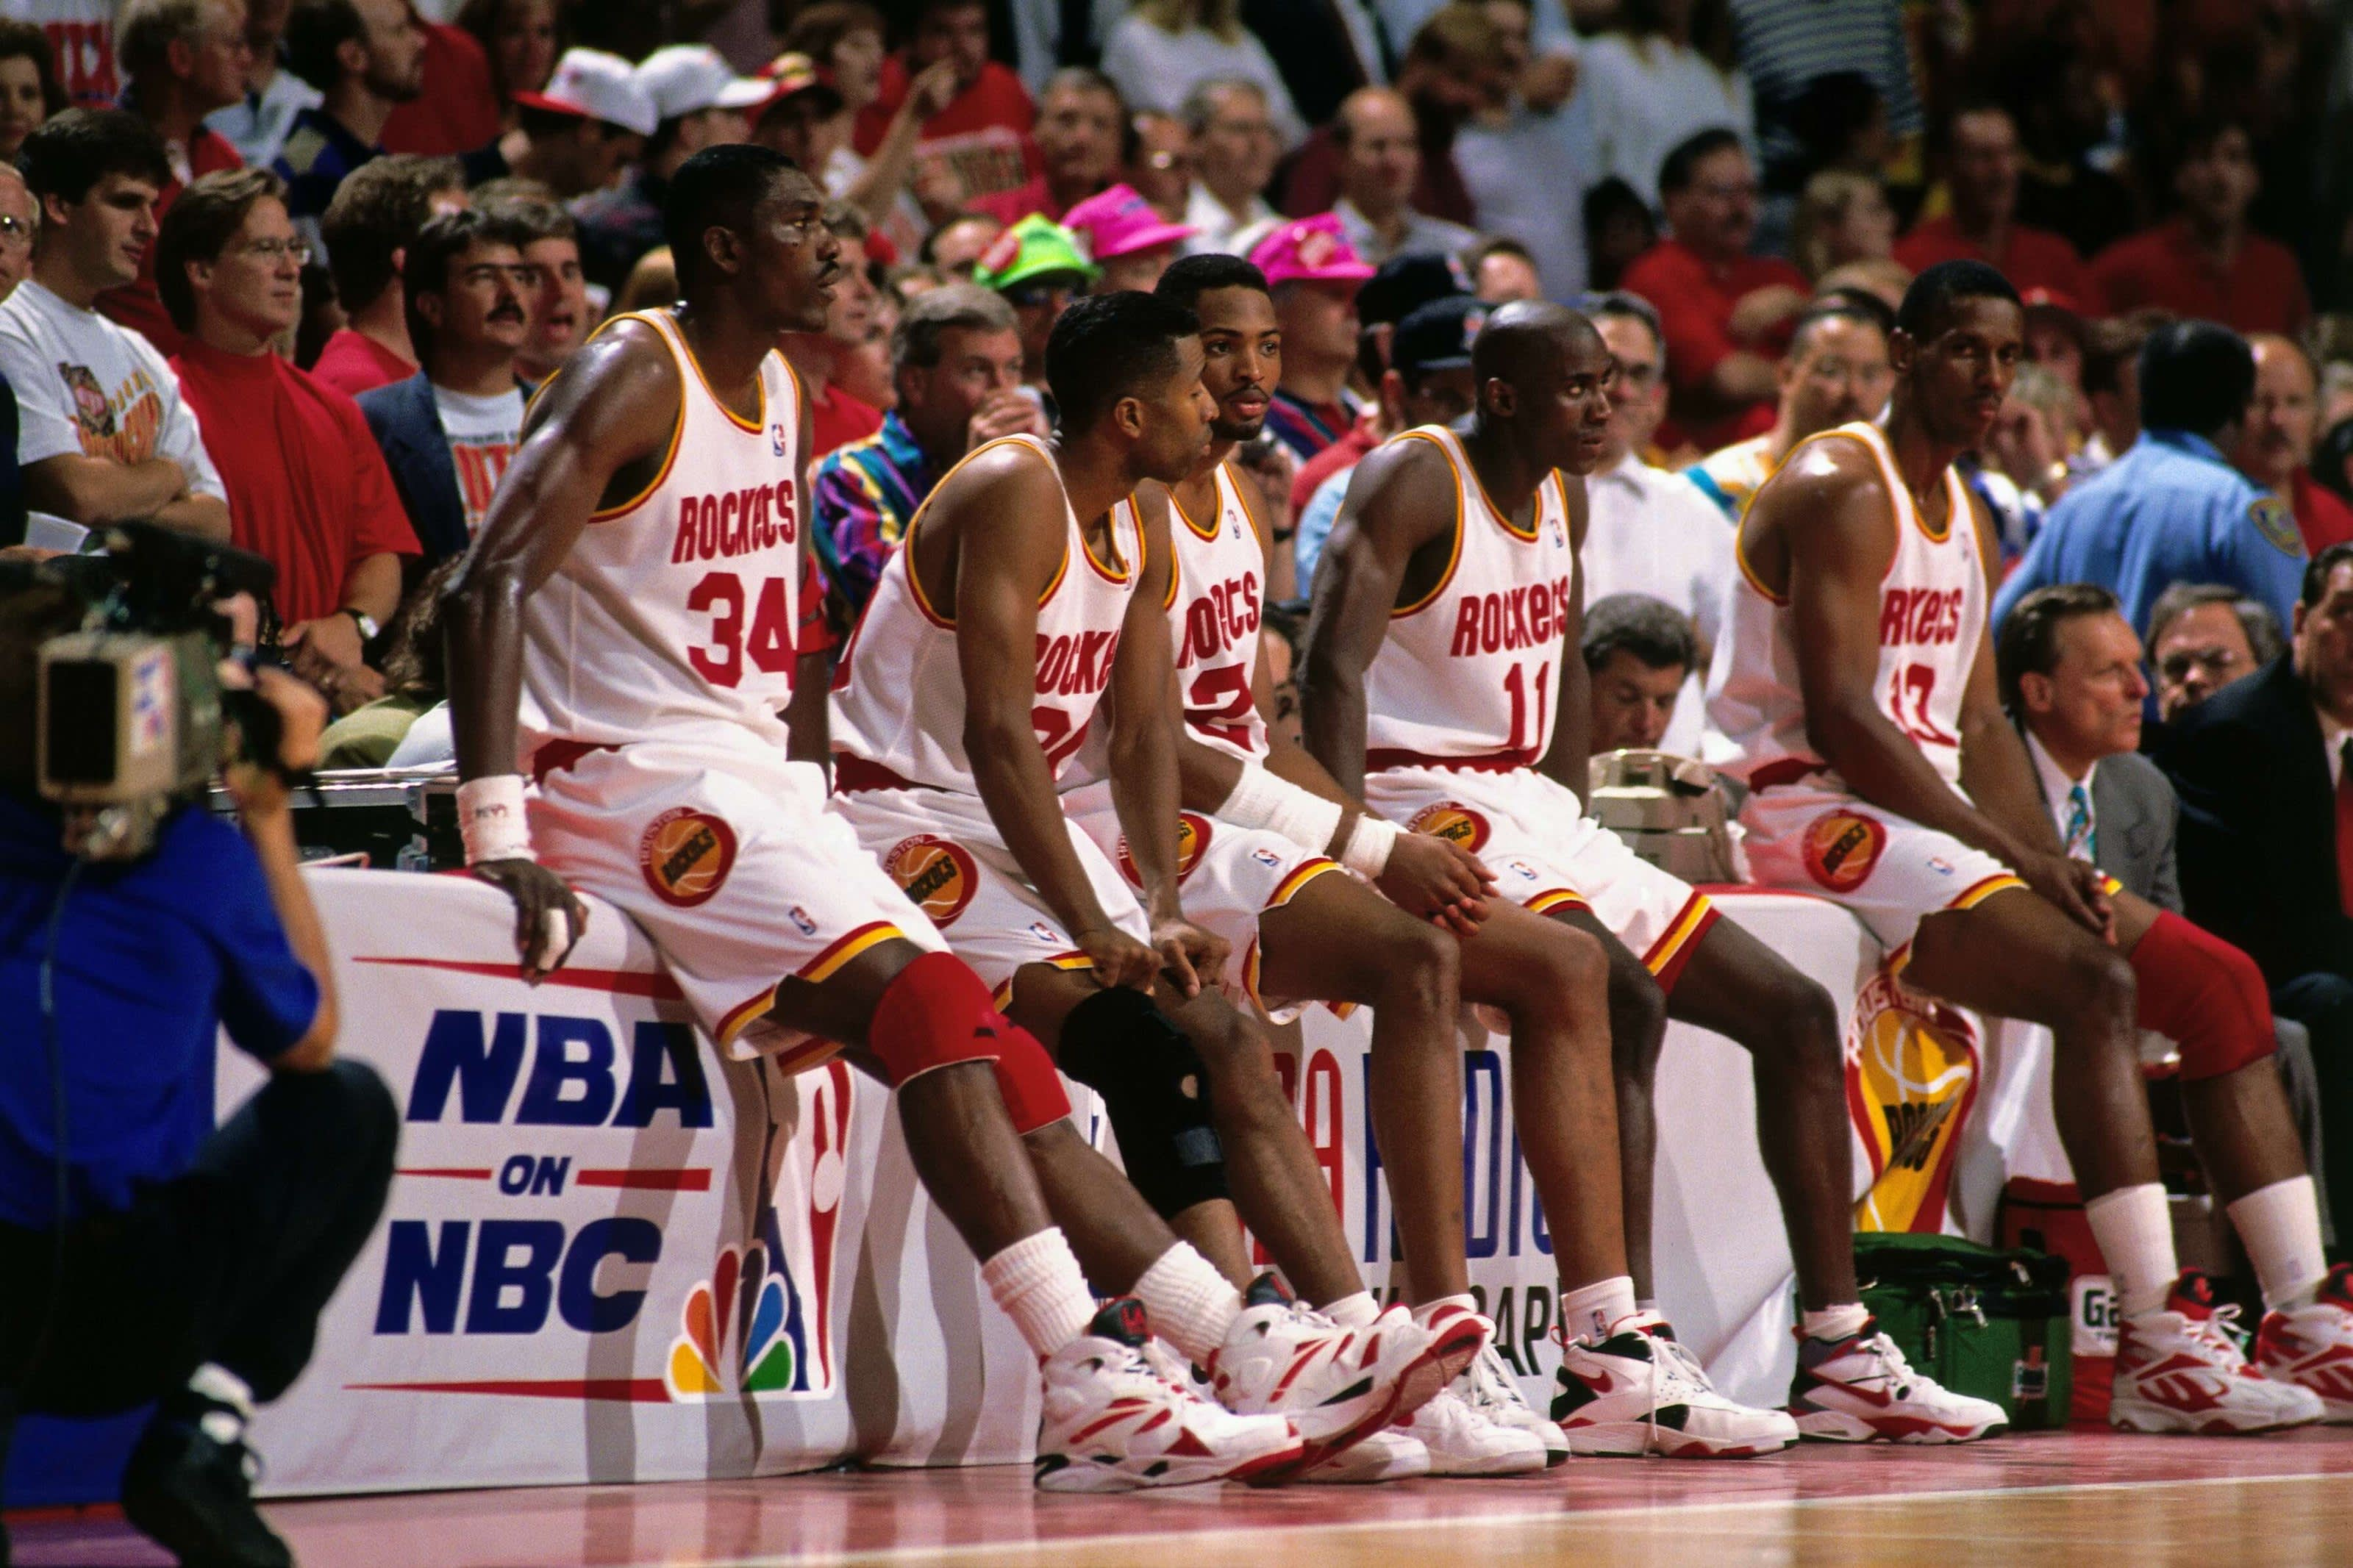 Houston Rockets, Kenny Smith, Hakeem Olajuwon, Robert Horry, Otis Thorpe